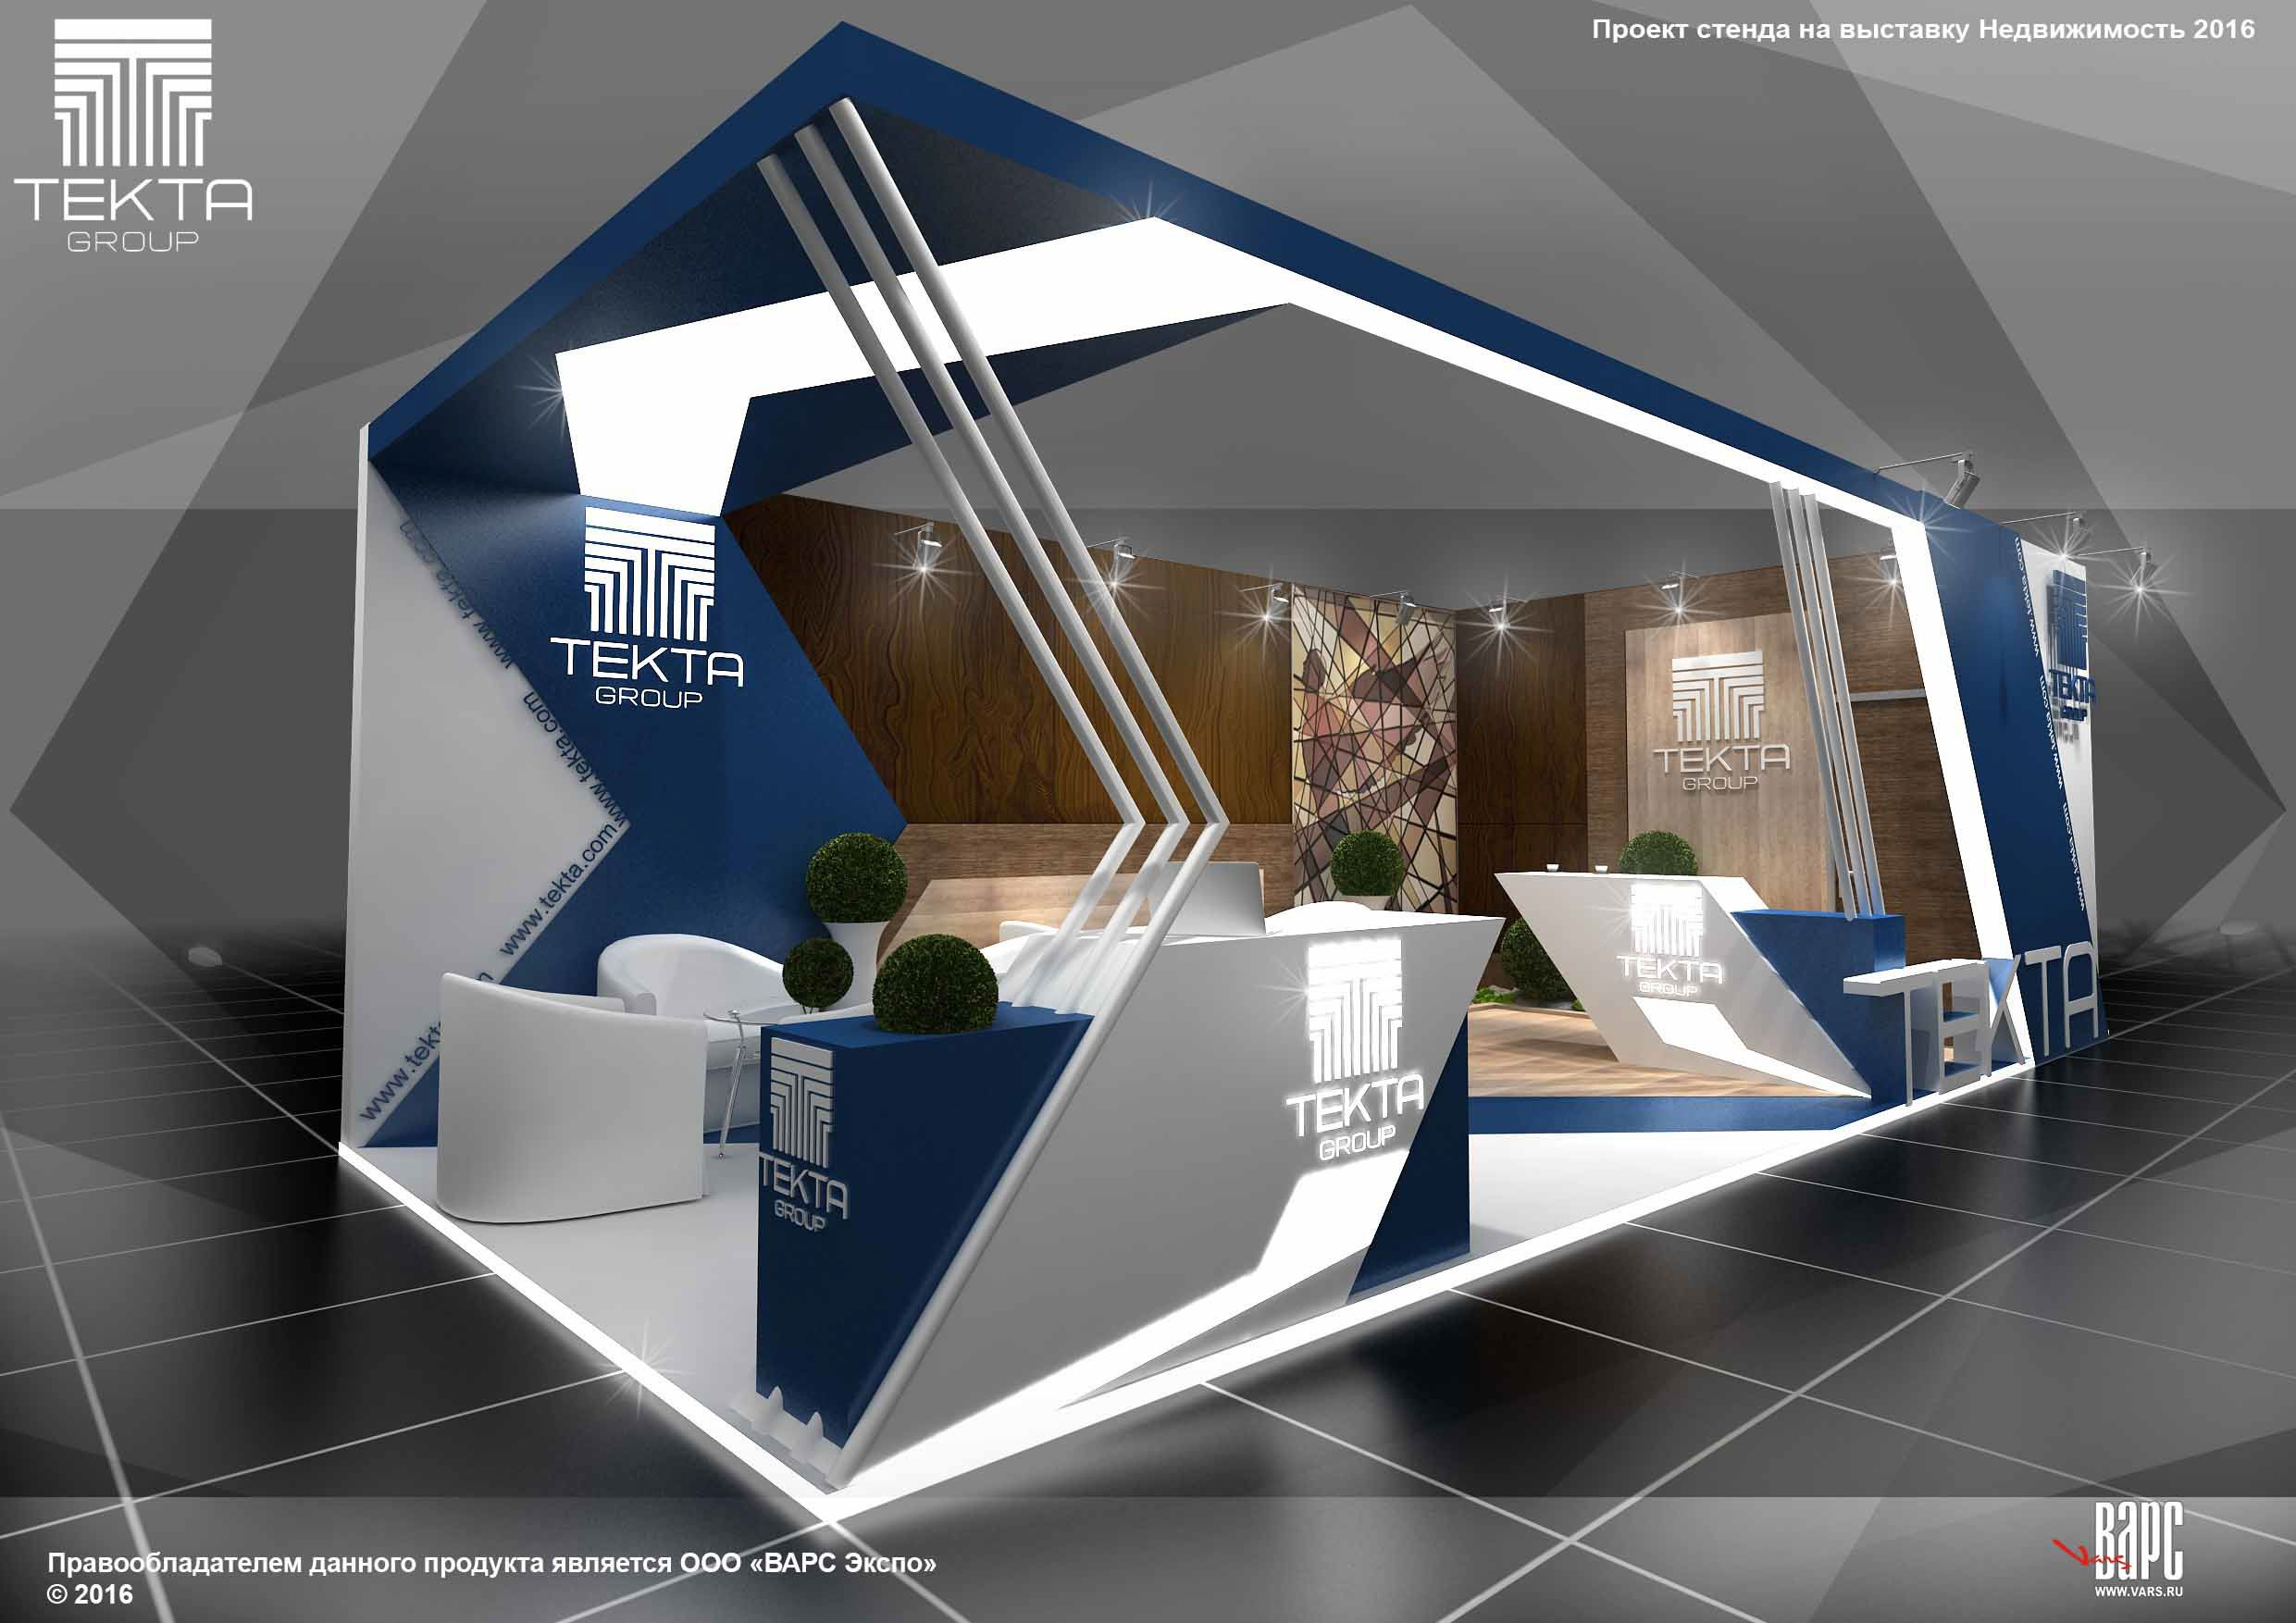 Property Exhibition Booth : Project tekta group booth at the exhibition real estate in